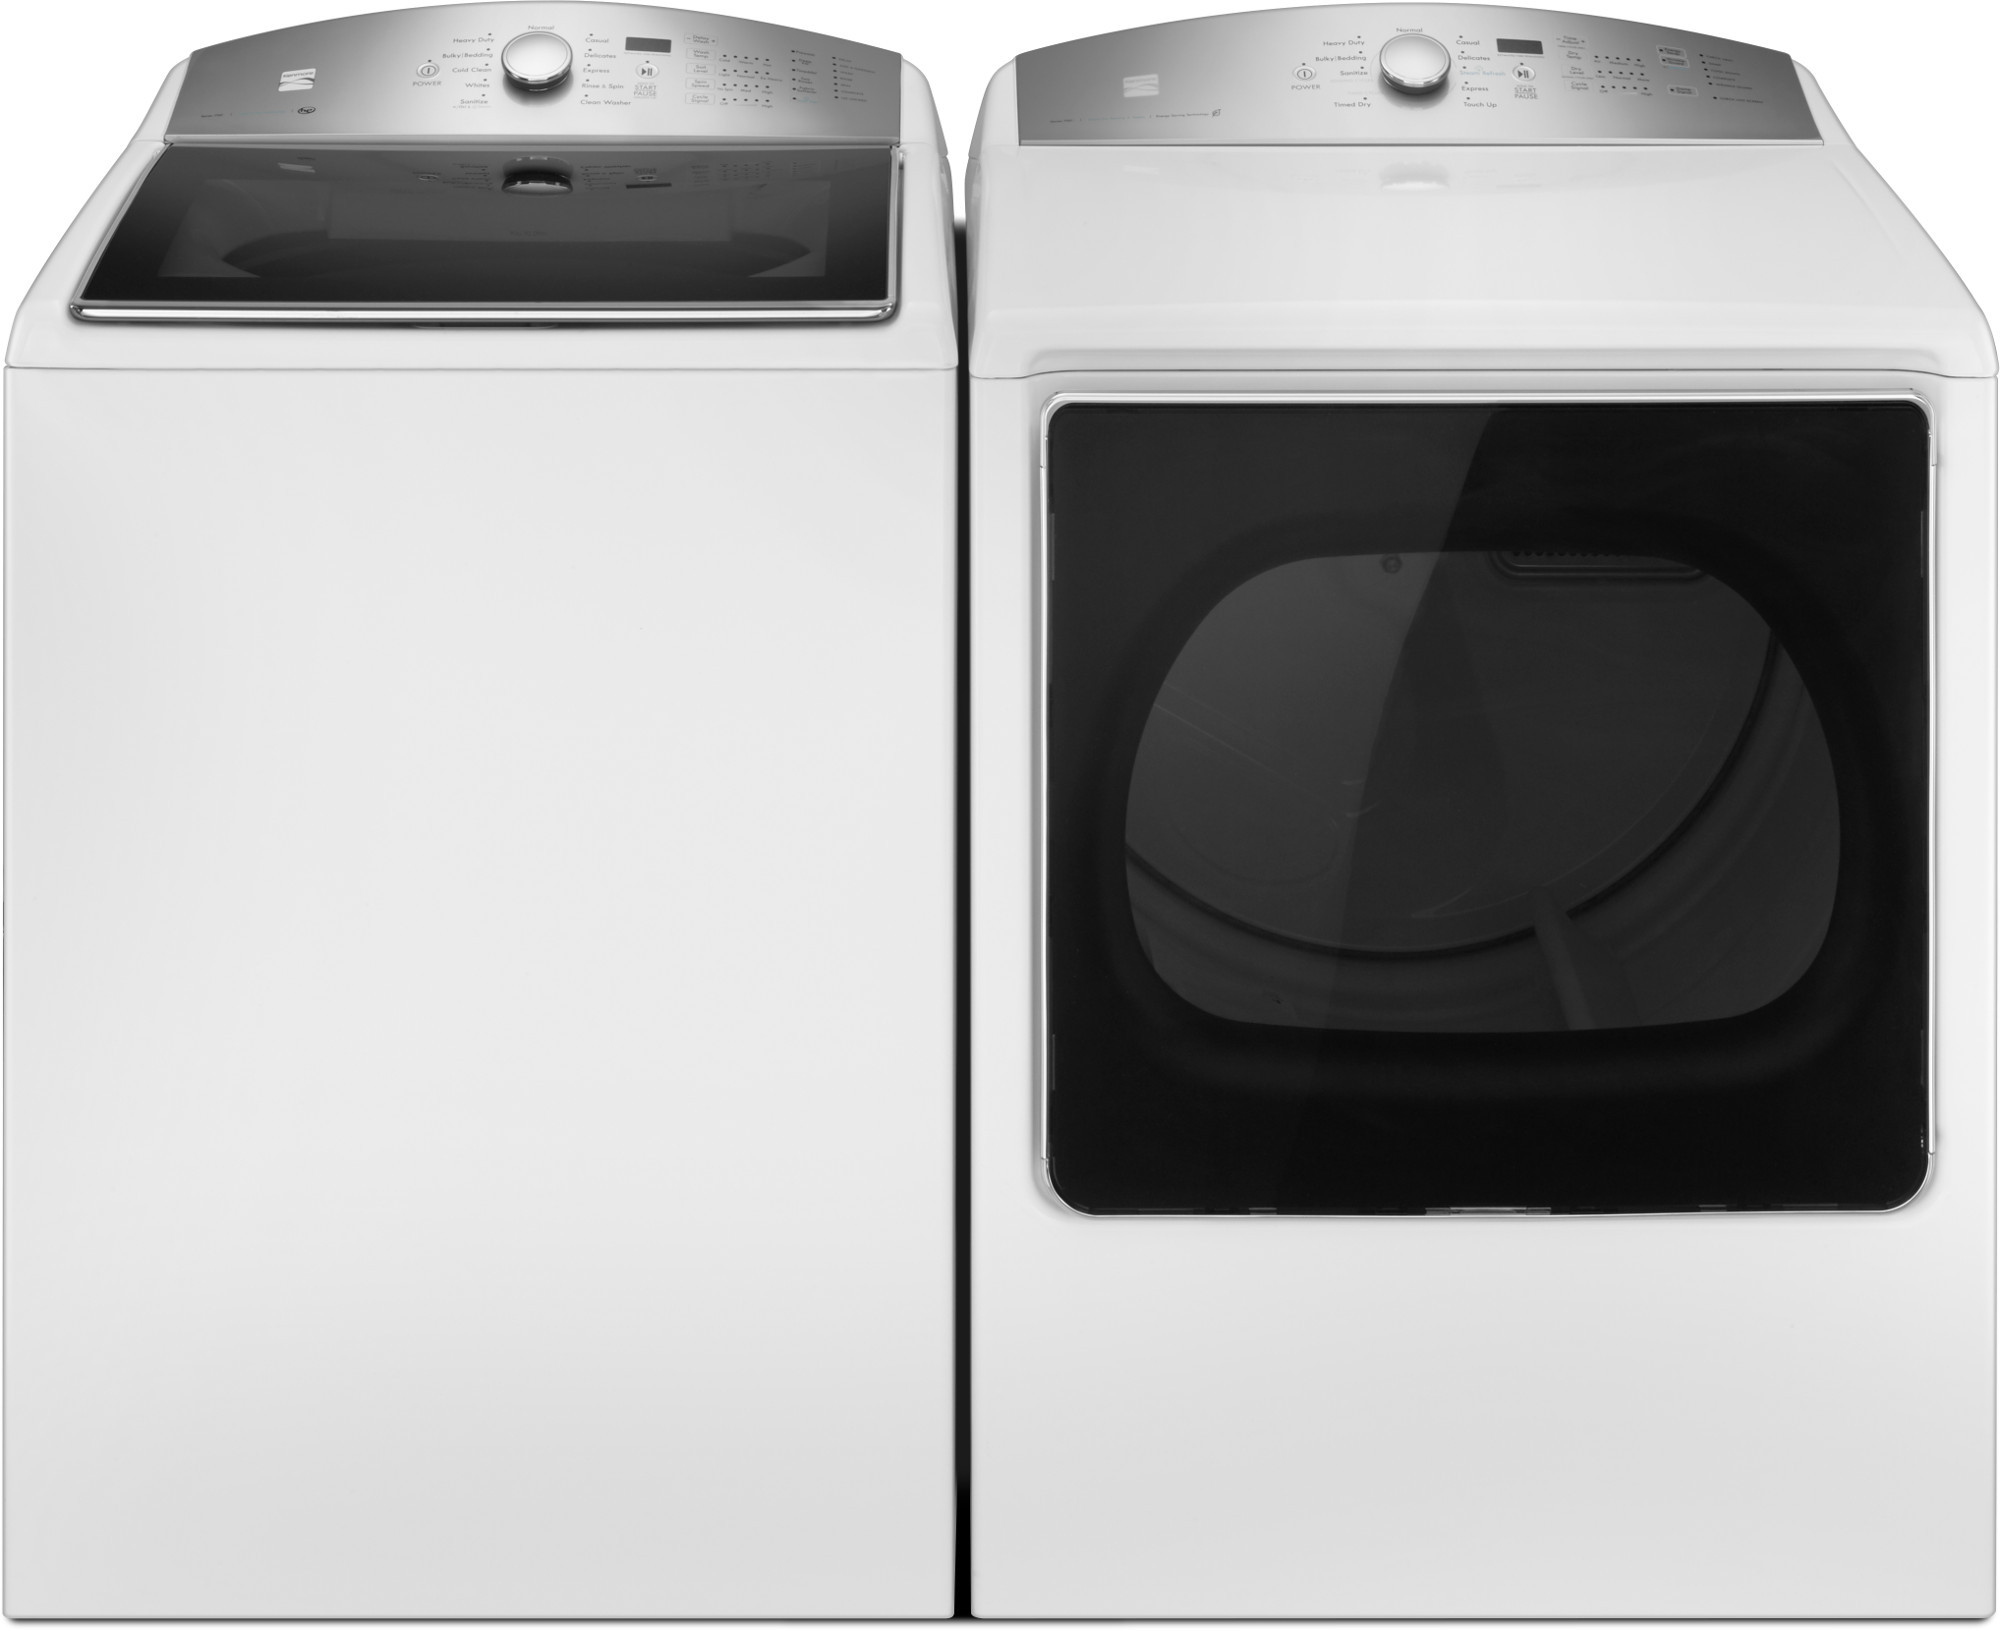 5.3 cu. ft. Top-Load Washer w/ a Triple Action Impeller & 8.8 cu. ft. Dryer w/ SmartDry Tech - White